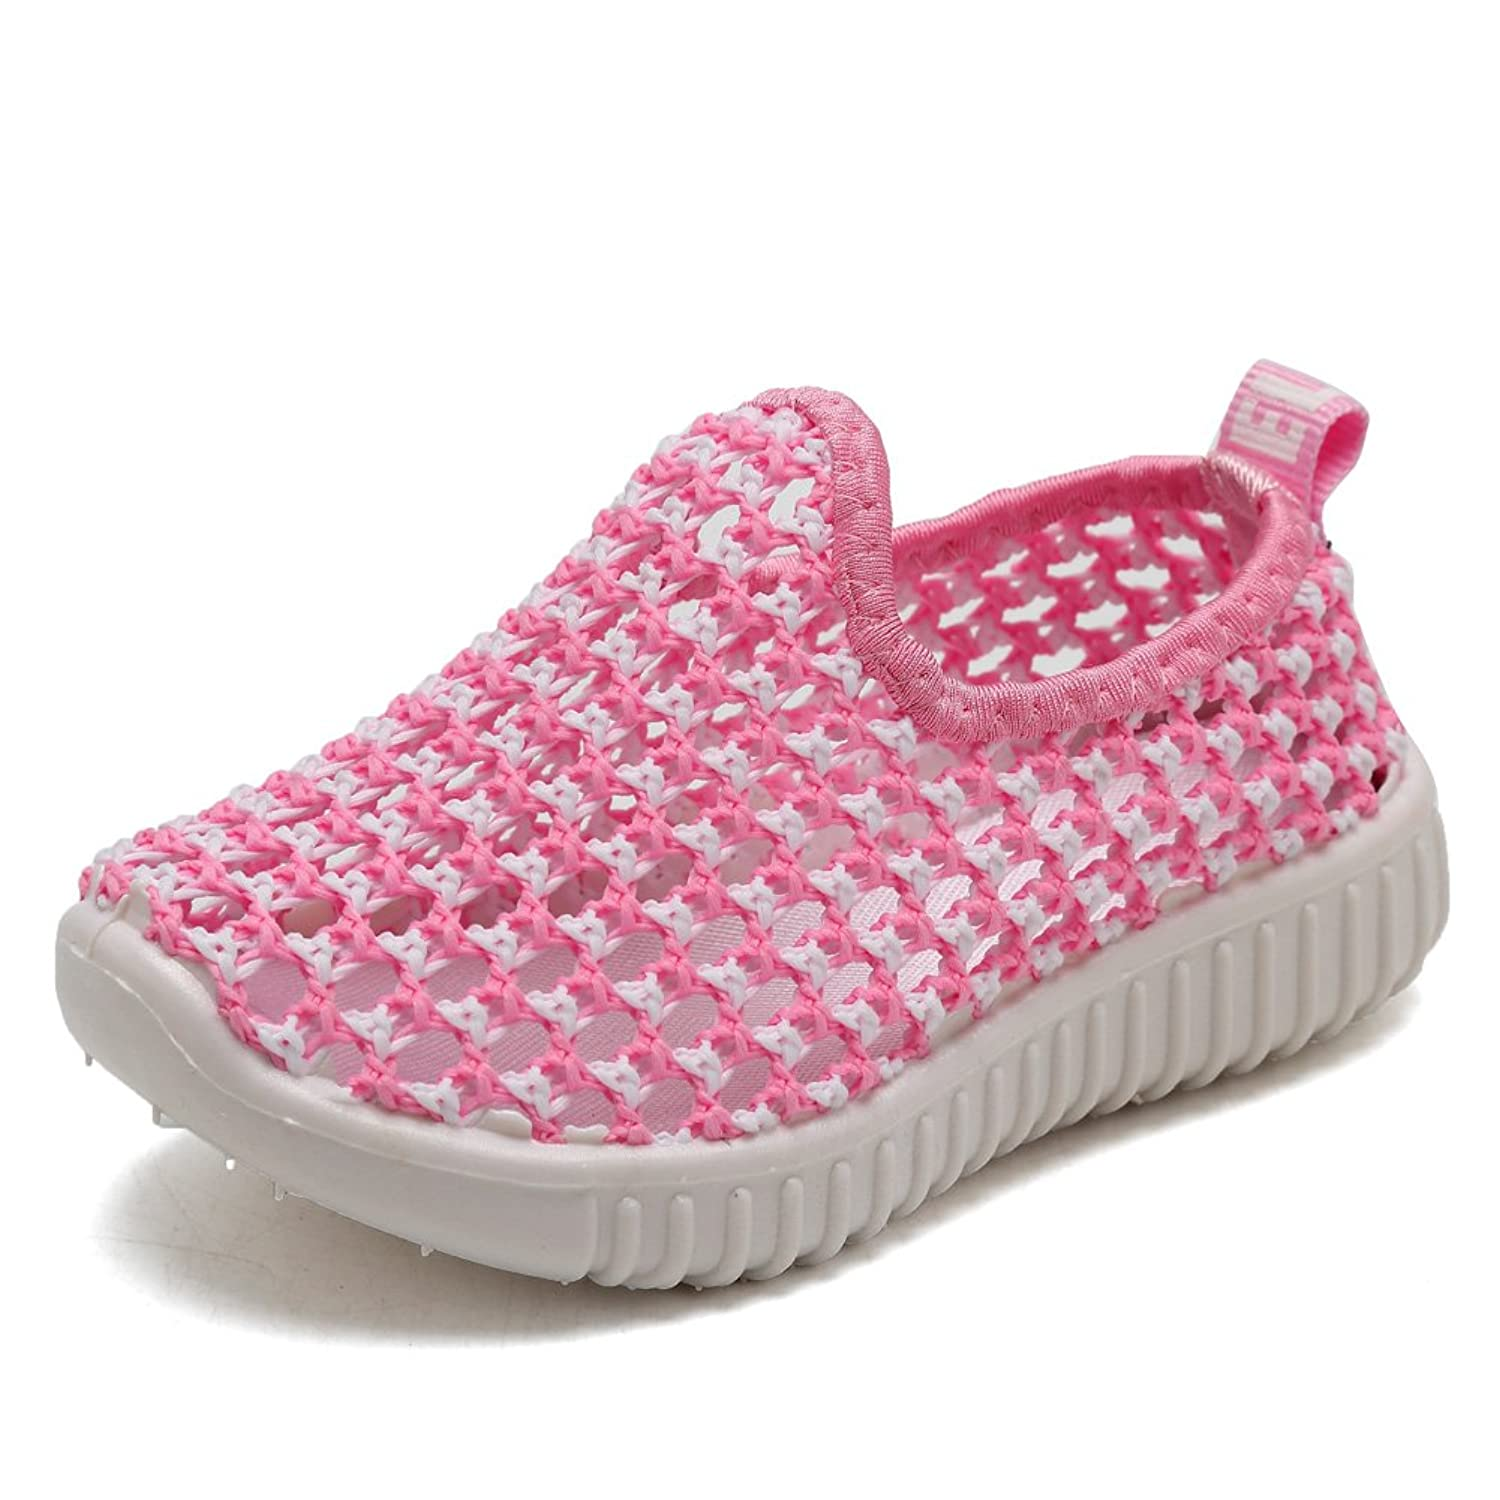 1c28ddbc8c6af3 EQUICK Kids Slip-on Casual Sneakers Breathable Water Shoes for Running Pool  Beach (Toddler